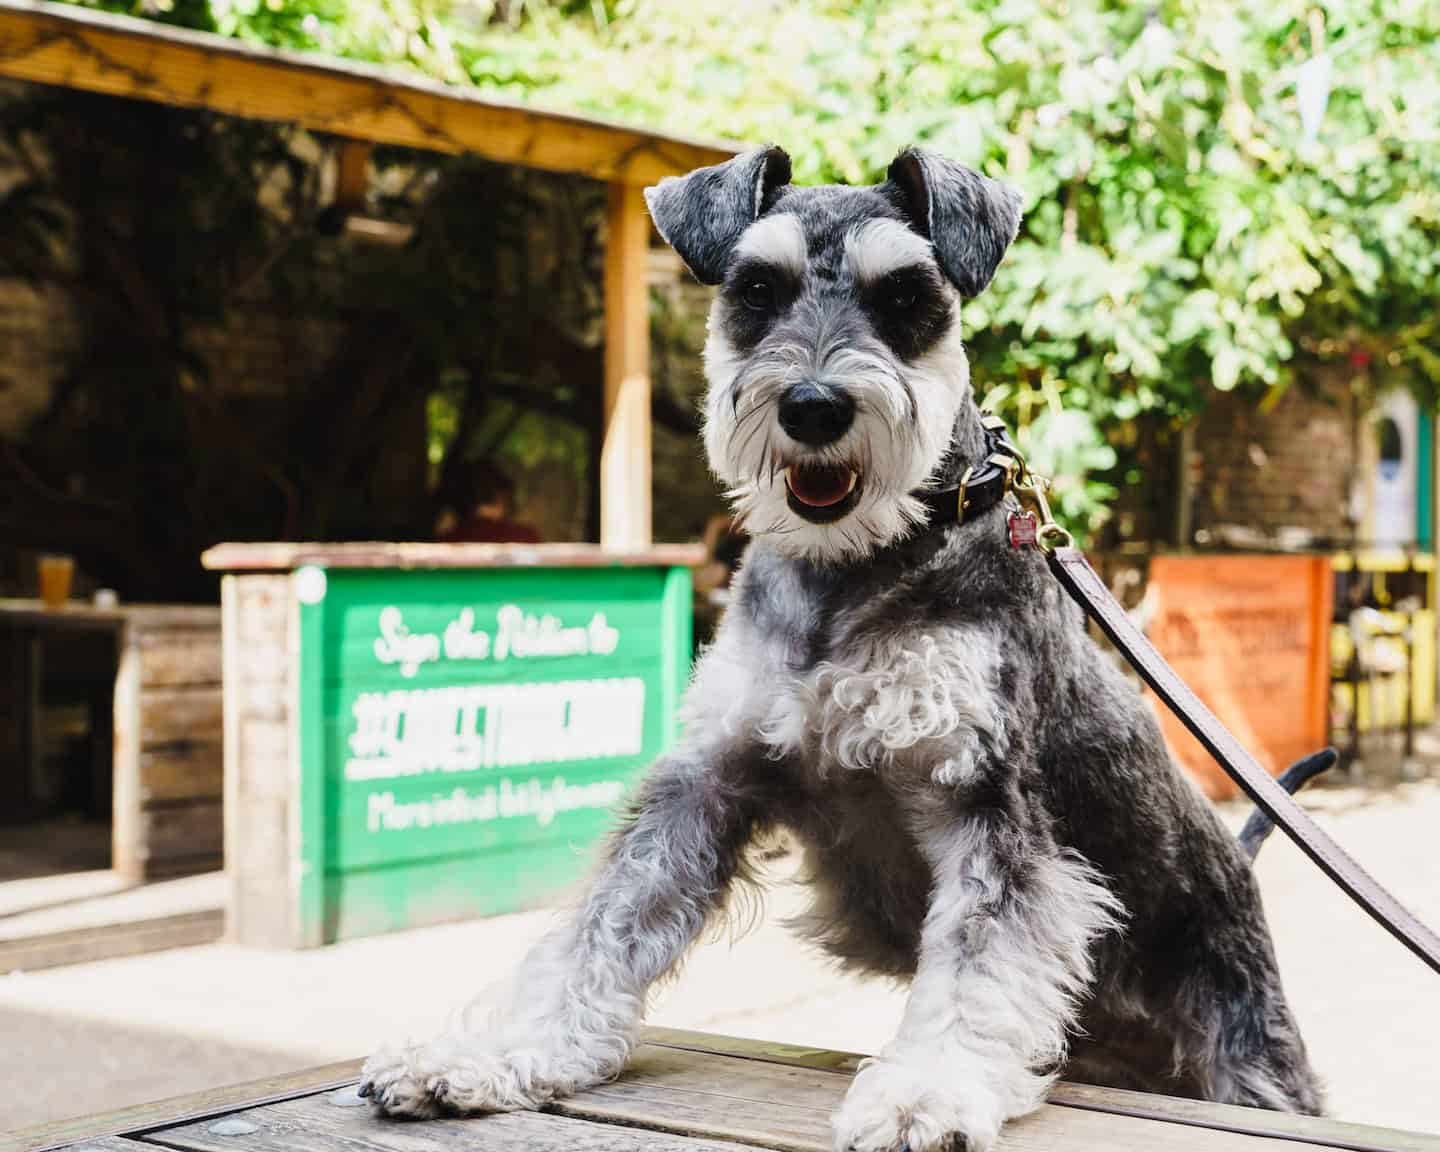 My Dog Friendly London By Rusty Red The Schnauzer | Dog Friendly Shoreditch and Hoxton Strongroom Bar & Kitchen 3